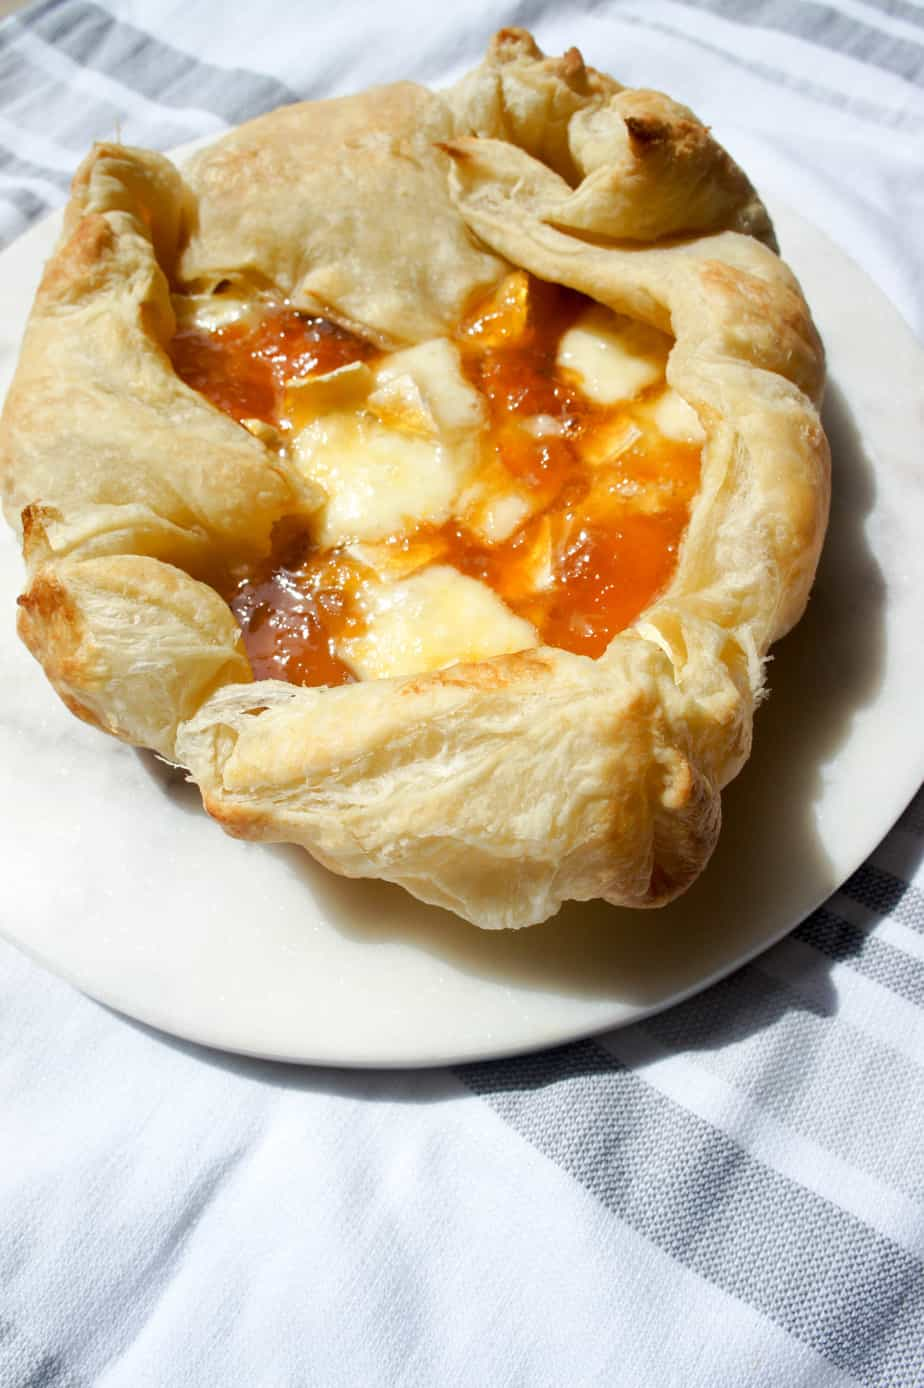 Baked Brie and Apricot Jam can easily be made in a puff pastry for a crowd, or a small ramekin for a few. Easy, delicious game food.